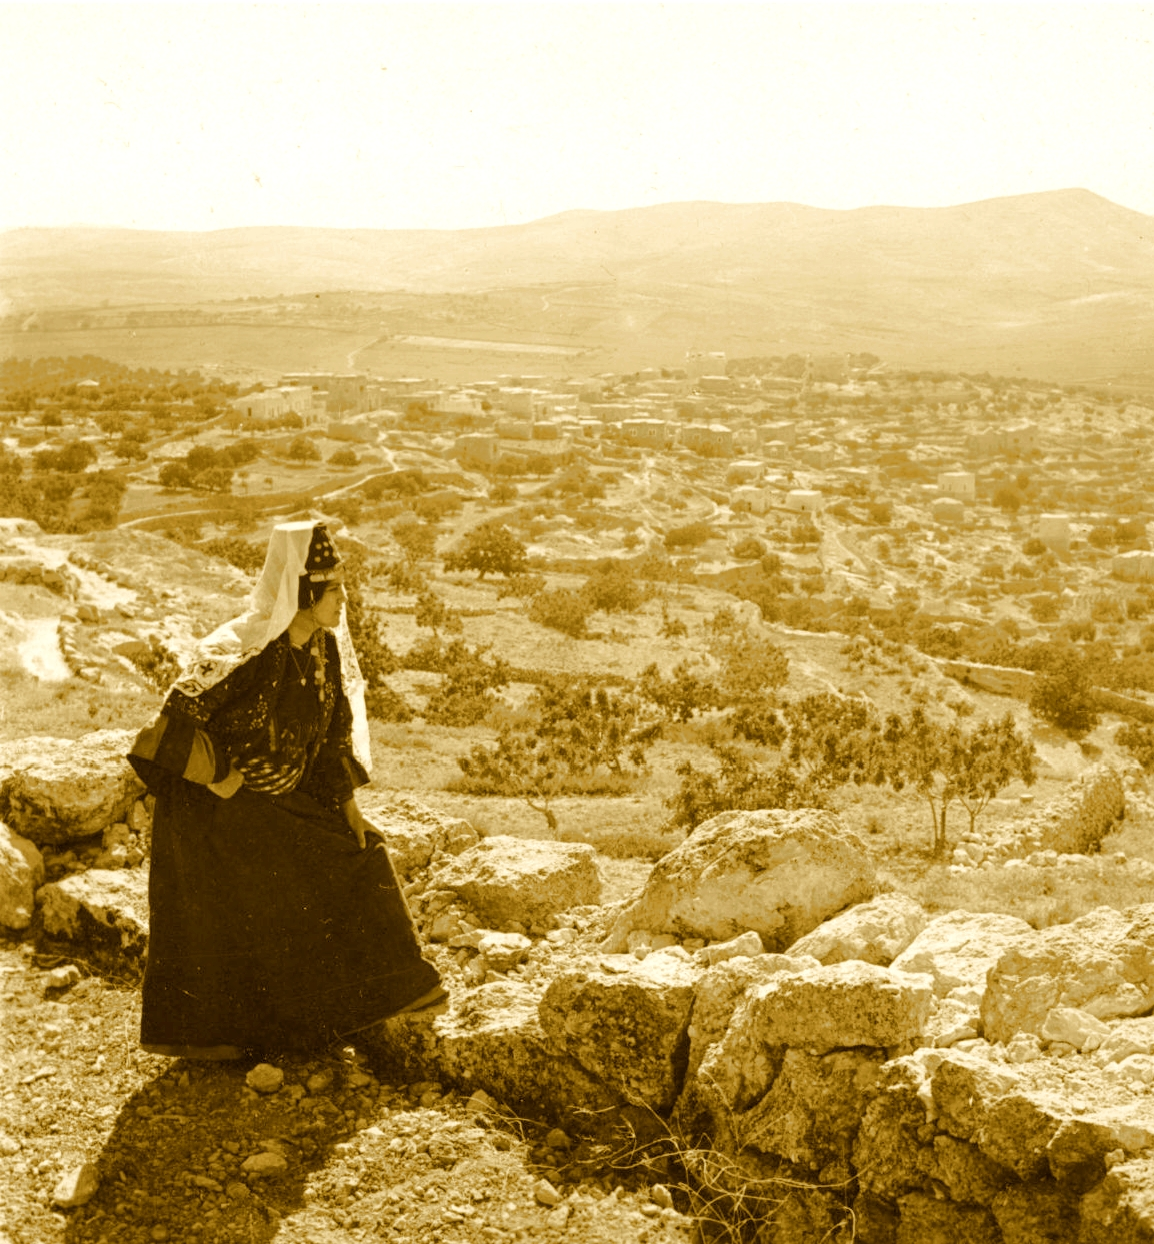 Bethlehem - بيت لحم : Women of Bethlehem 145 (late 19th, early 20th c.) - In the Hhlls and fields North from Bethlehem, showing road to Jerusalem (Per Reem Ackall)